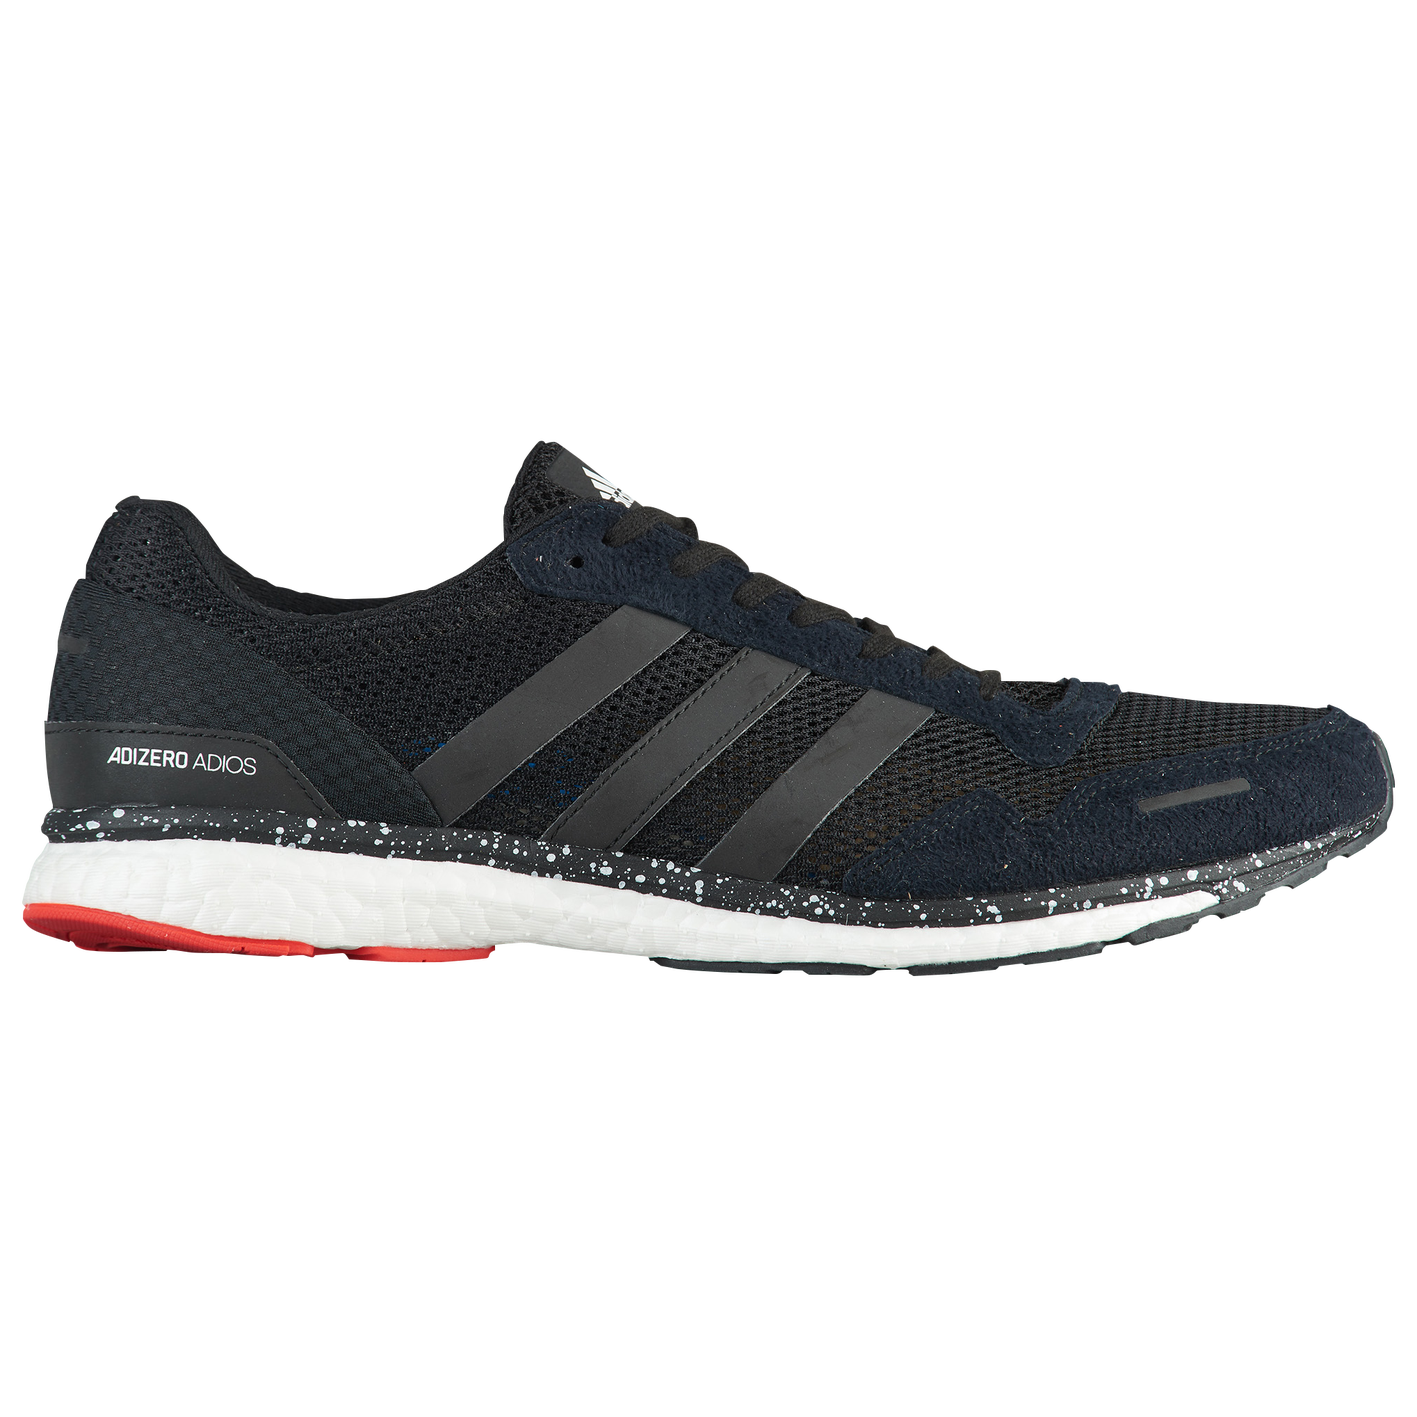 3ddee963f6471 adidas adiZero Adios Boost 3 - Men s - Running - Shoes - Hi-Res Red ...